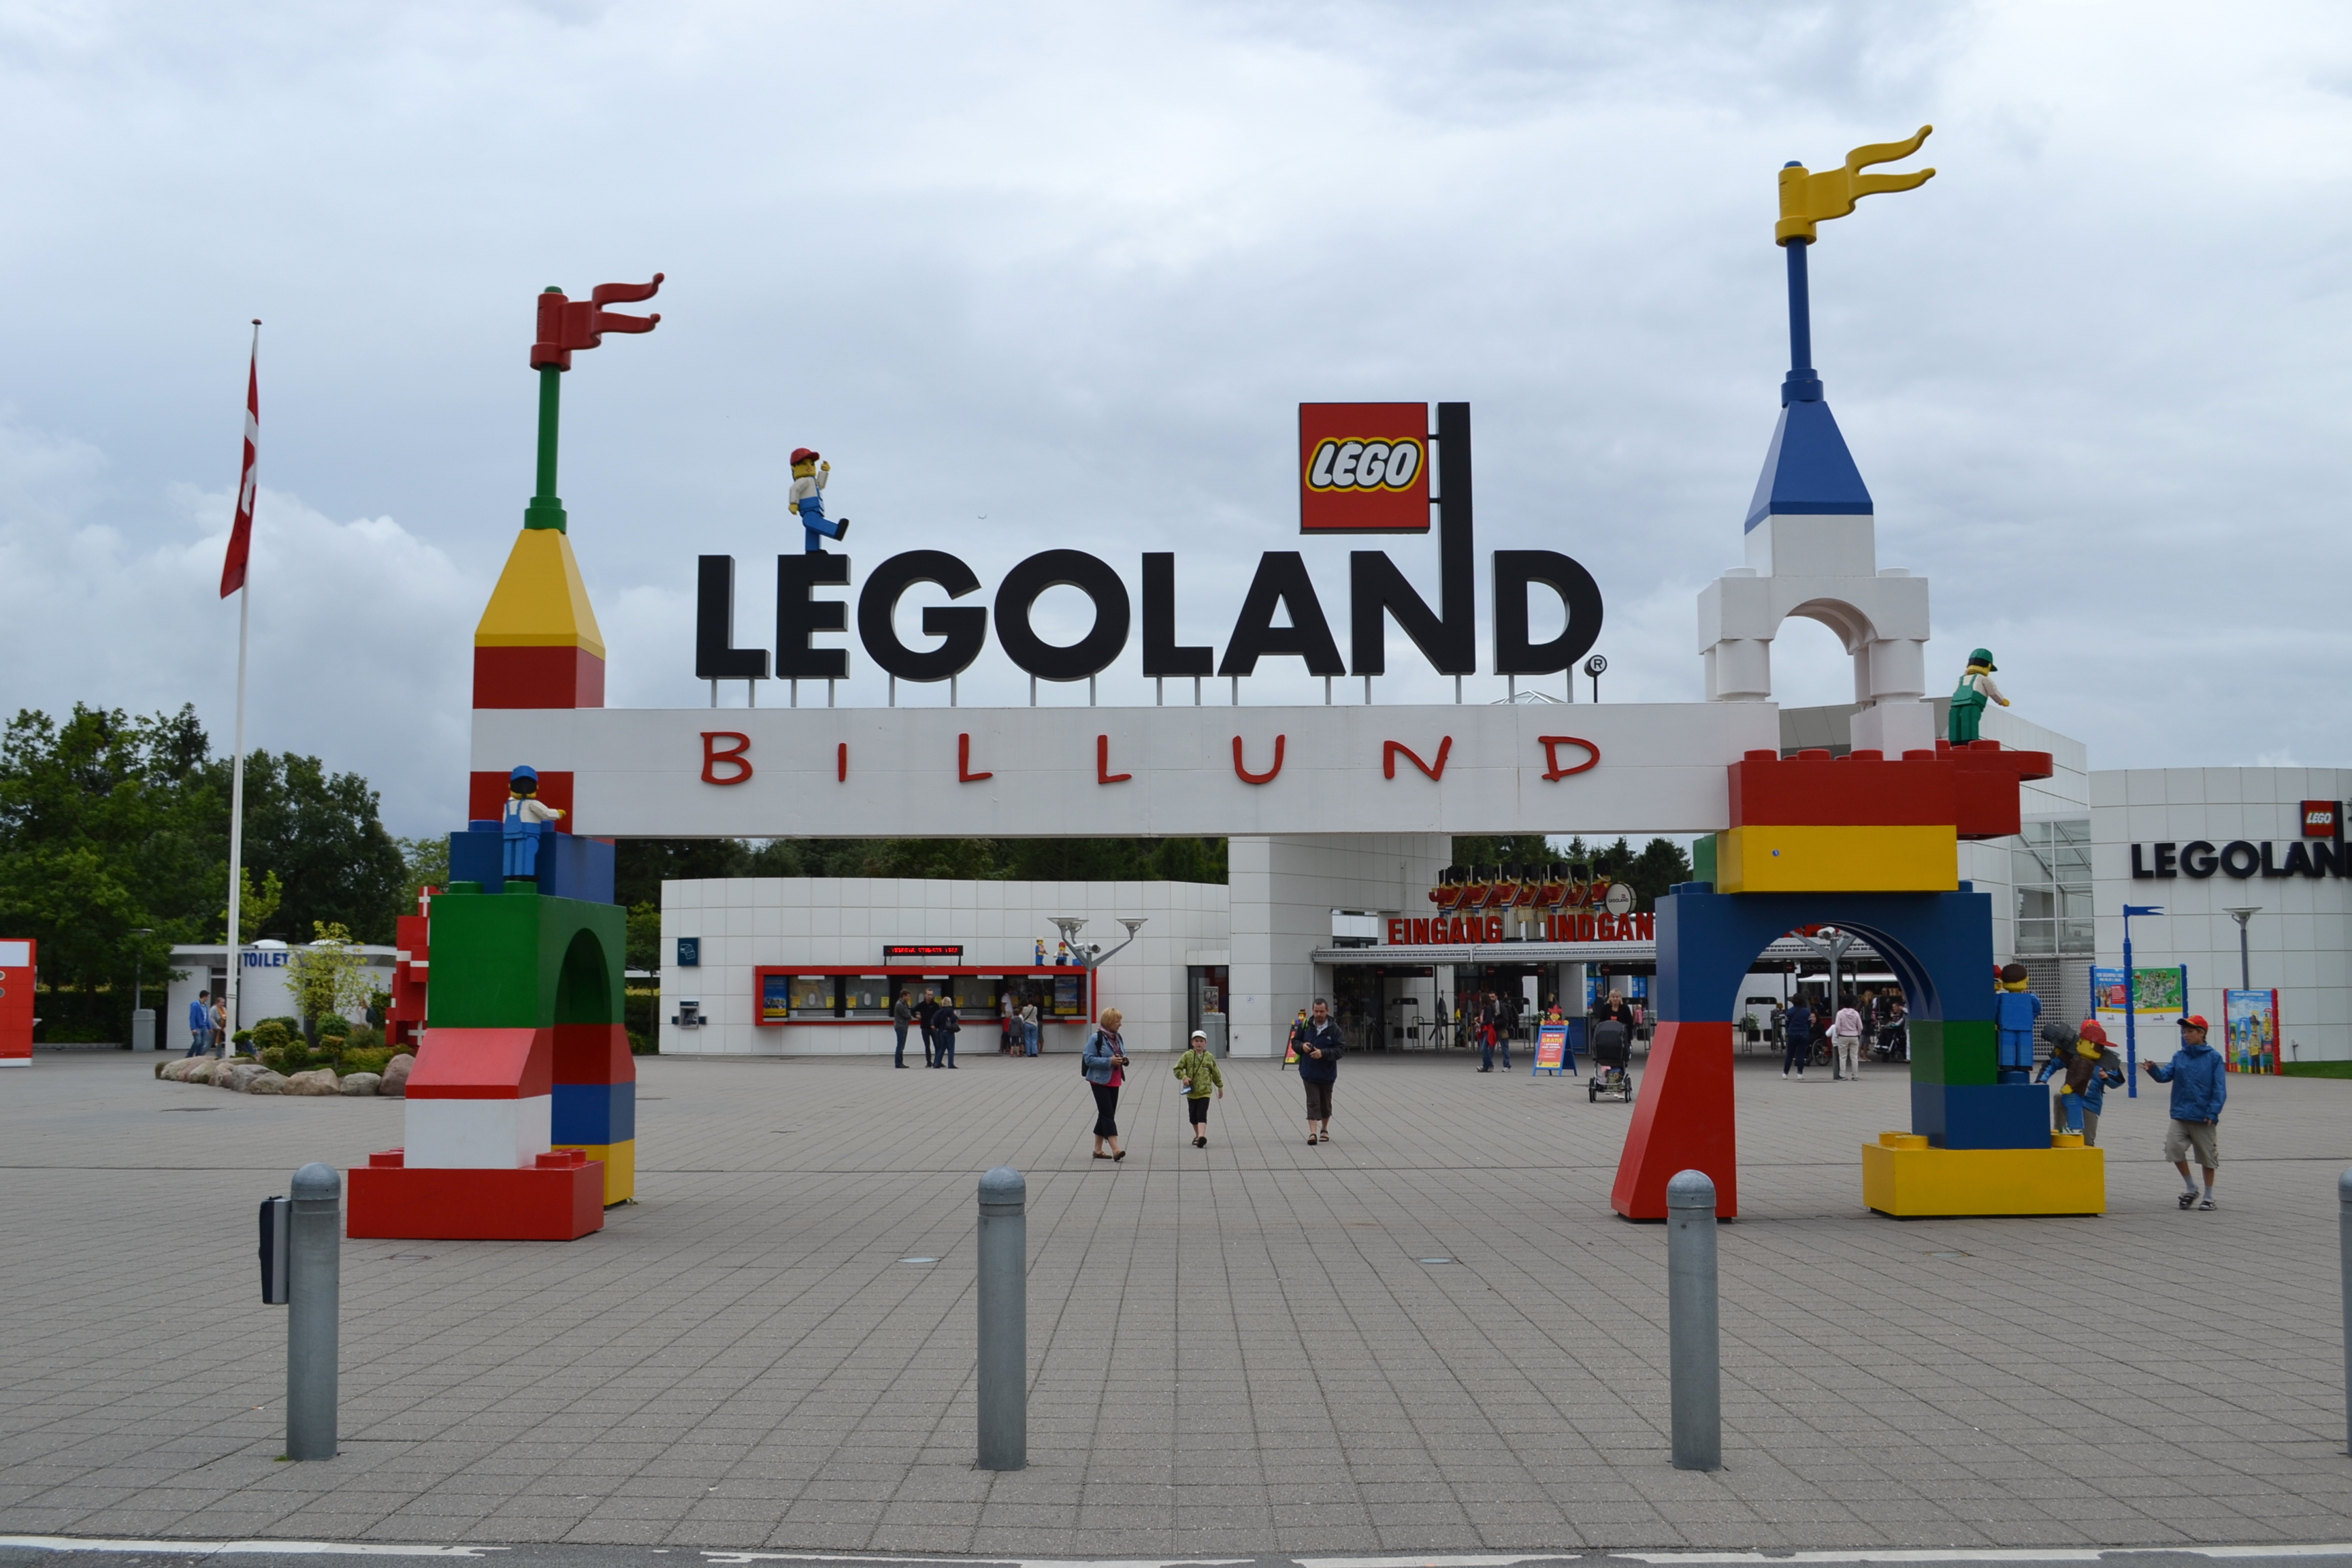 Legoland image from here.